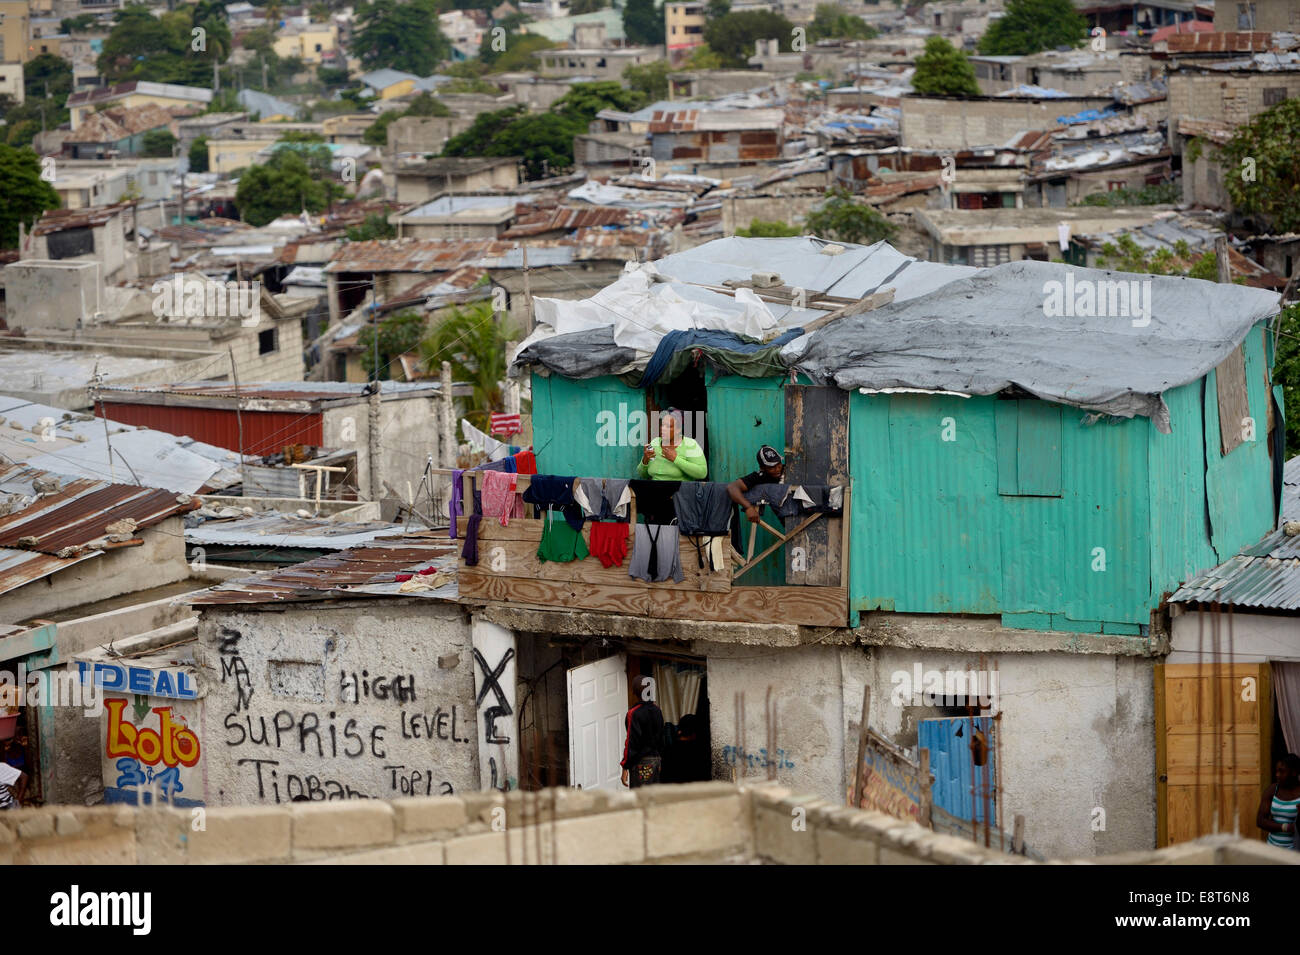 Woman on the balcony of her green-painted shack, Fort National slum, Port-au-Prince, Haiti - Stock Image